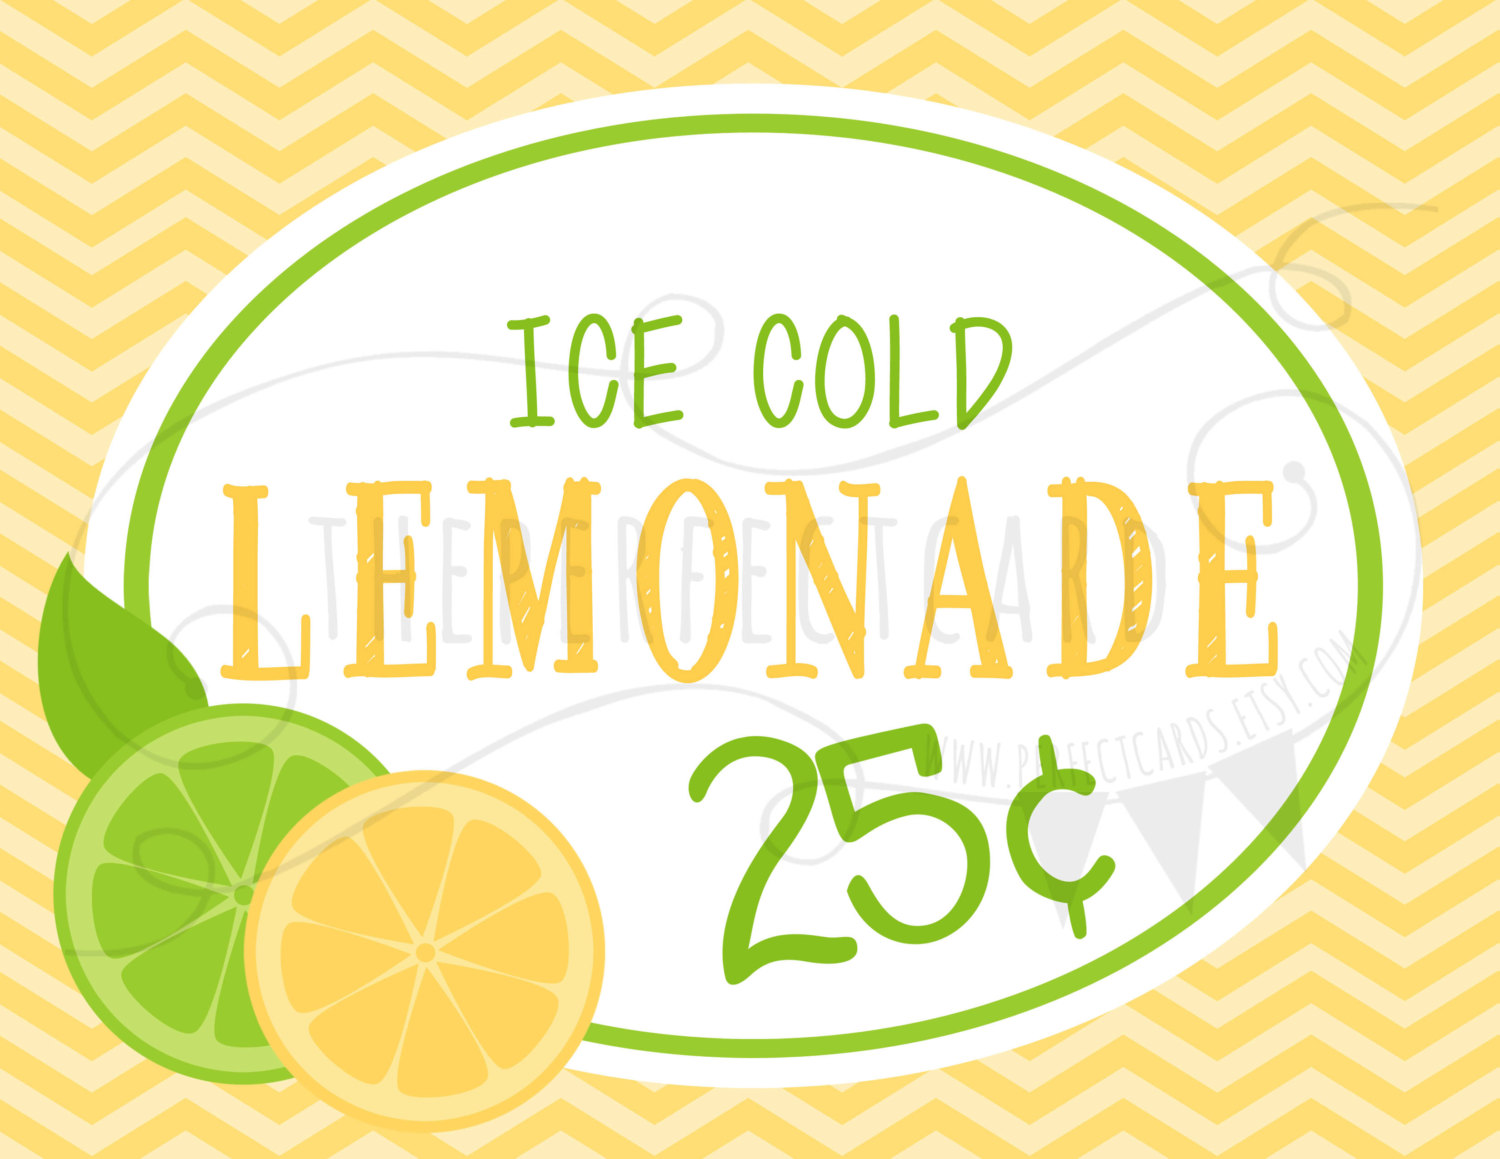 Image Gallery lemonade sign - 241.1KB